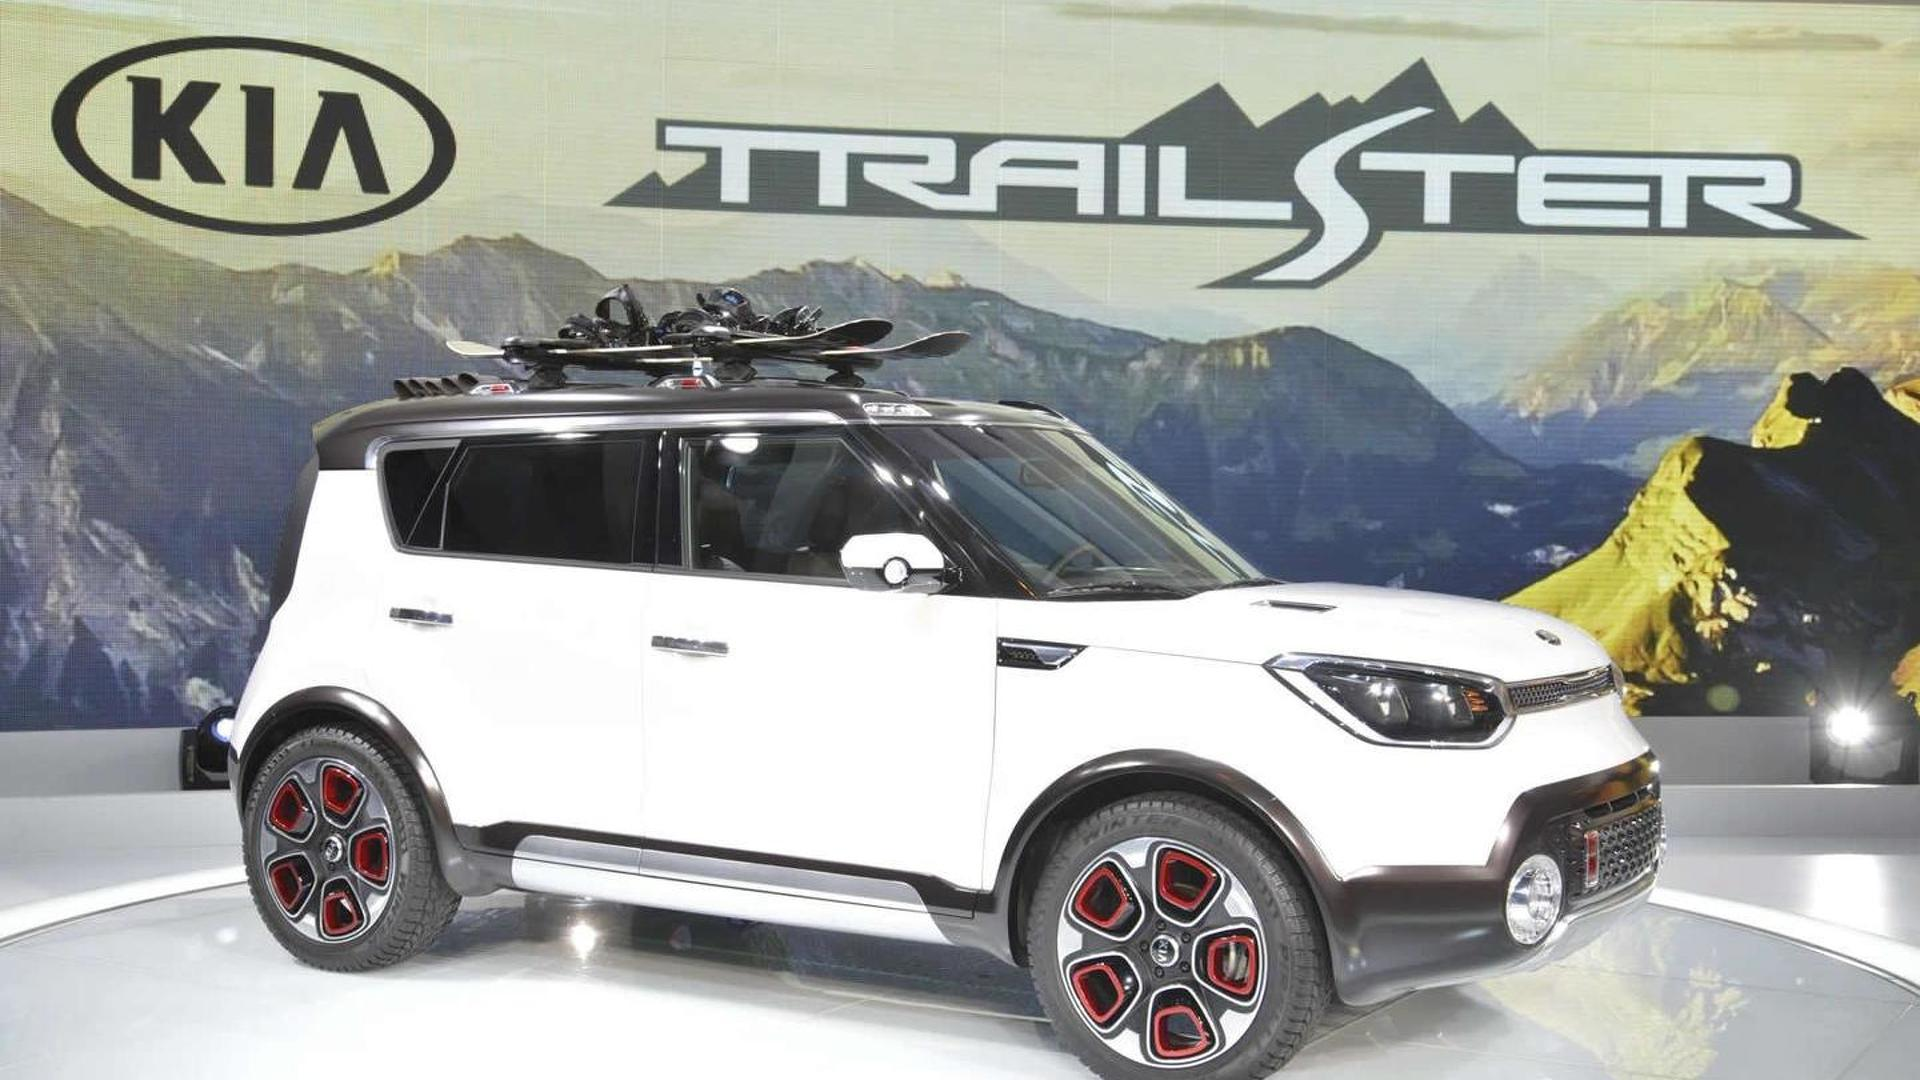 Kia Trail Ster Concept Arrives In Chicago As An Off Road Soul With Electric All Wheel Drive